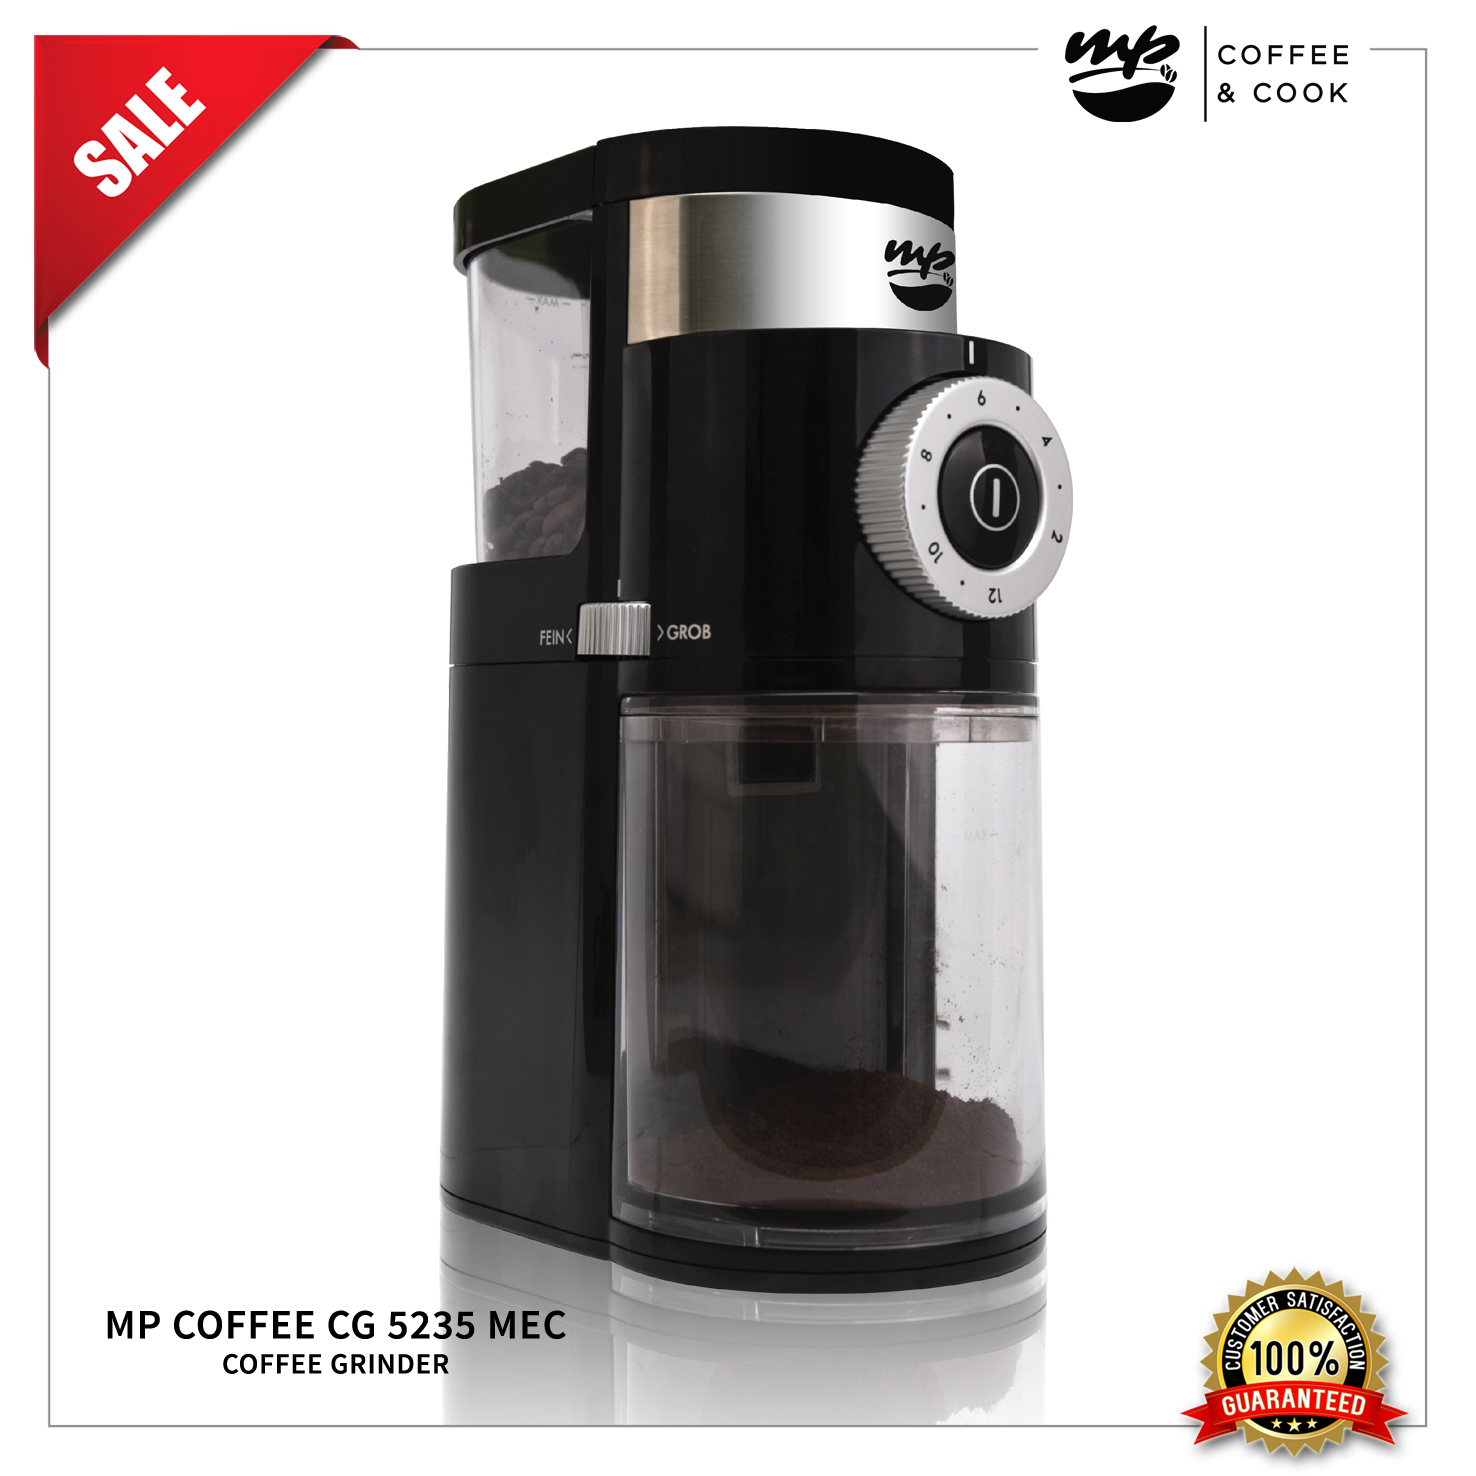 MP COFFEE 5235 MEC – 1